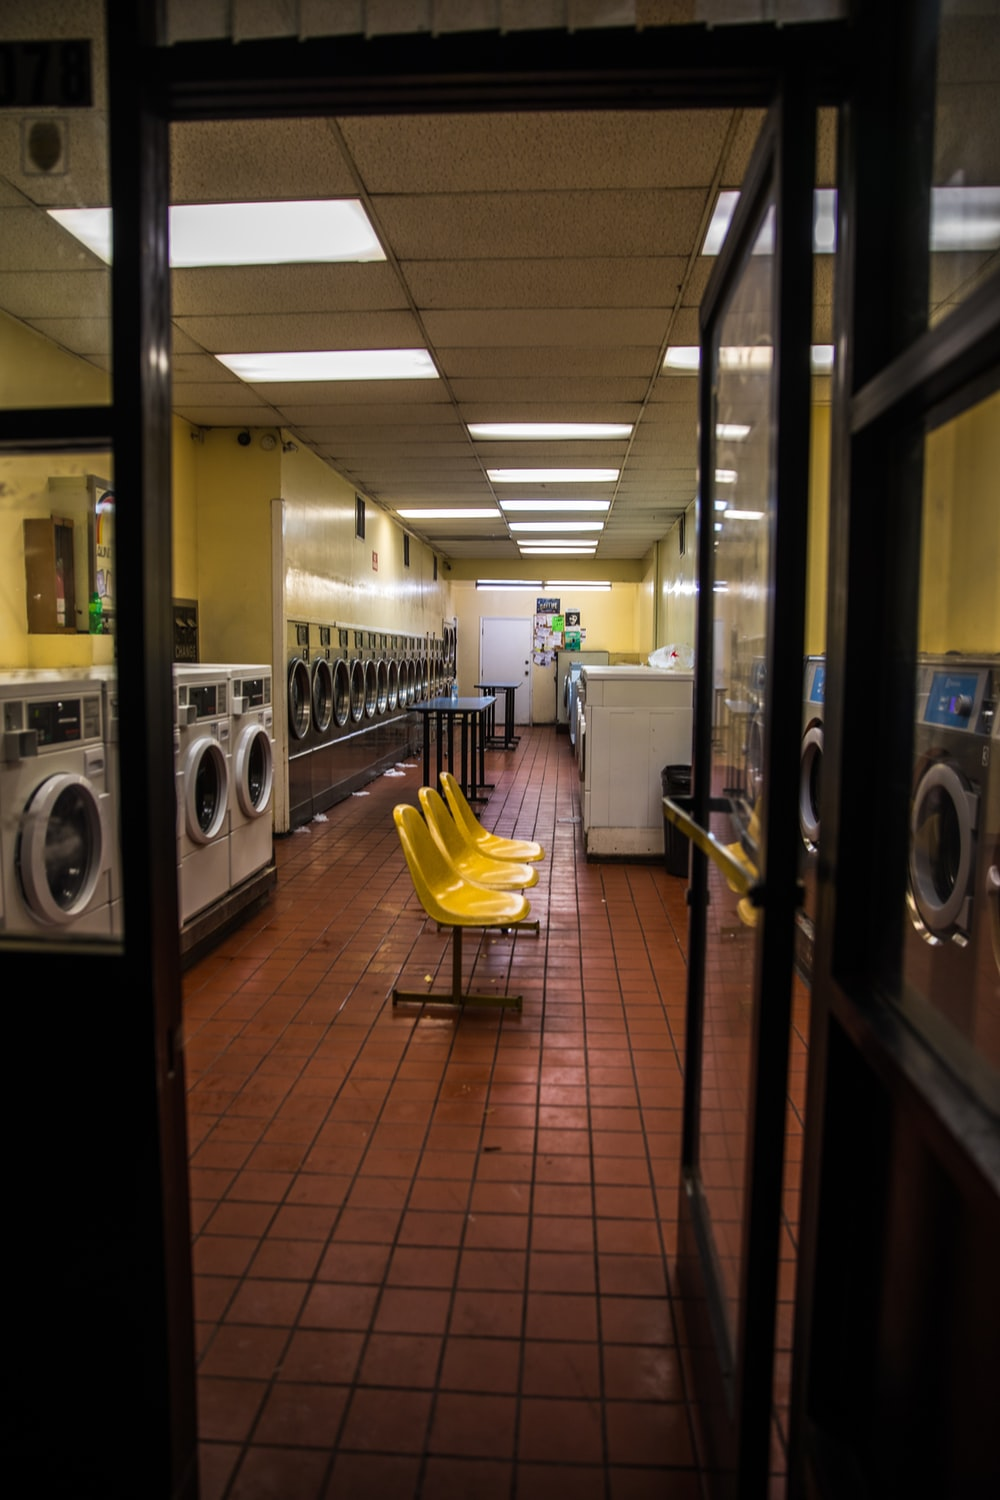 Laundromat Photoshoot Pictures Download Free Images On Unsplash